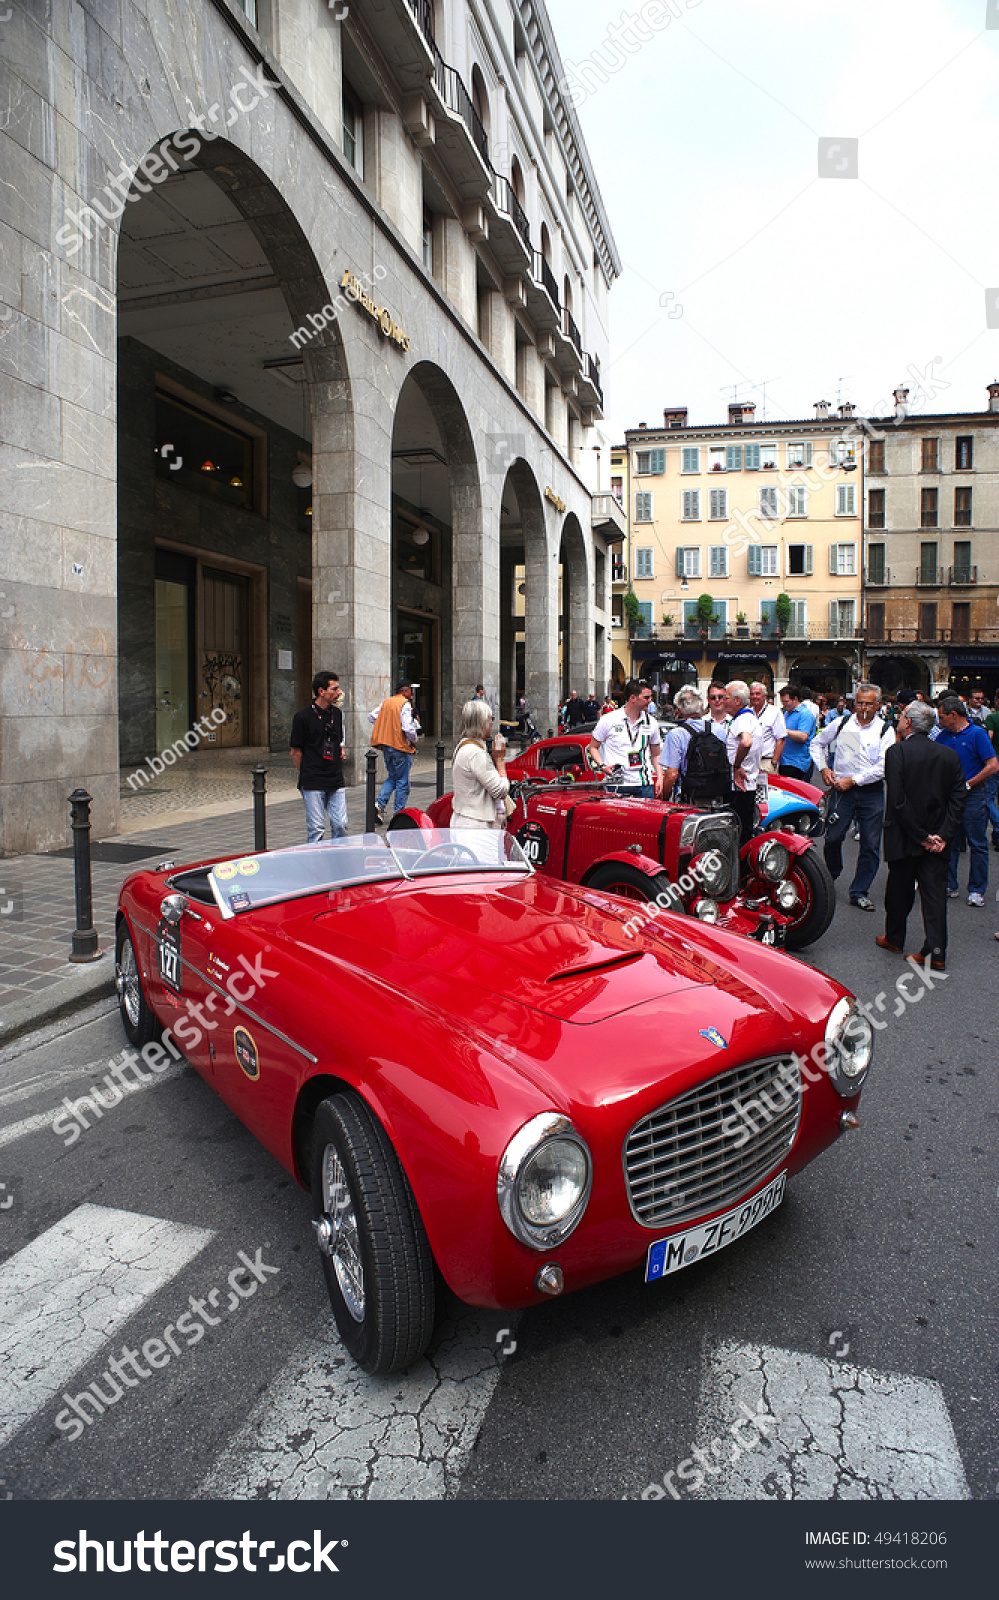 Brescia Italy Apr Classic Car Stock Photo Shutterstock - Famous classic cars